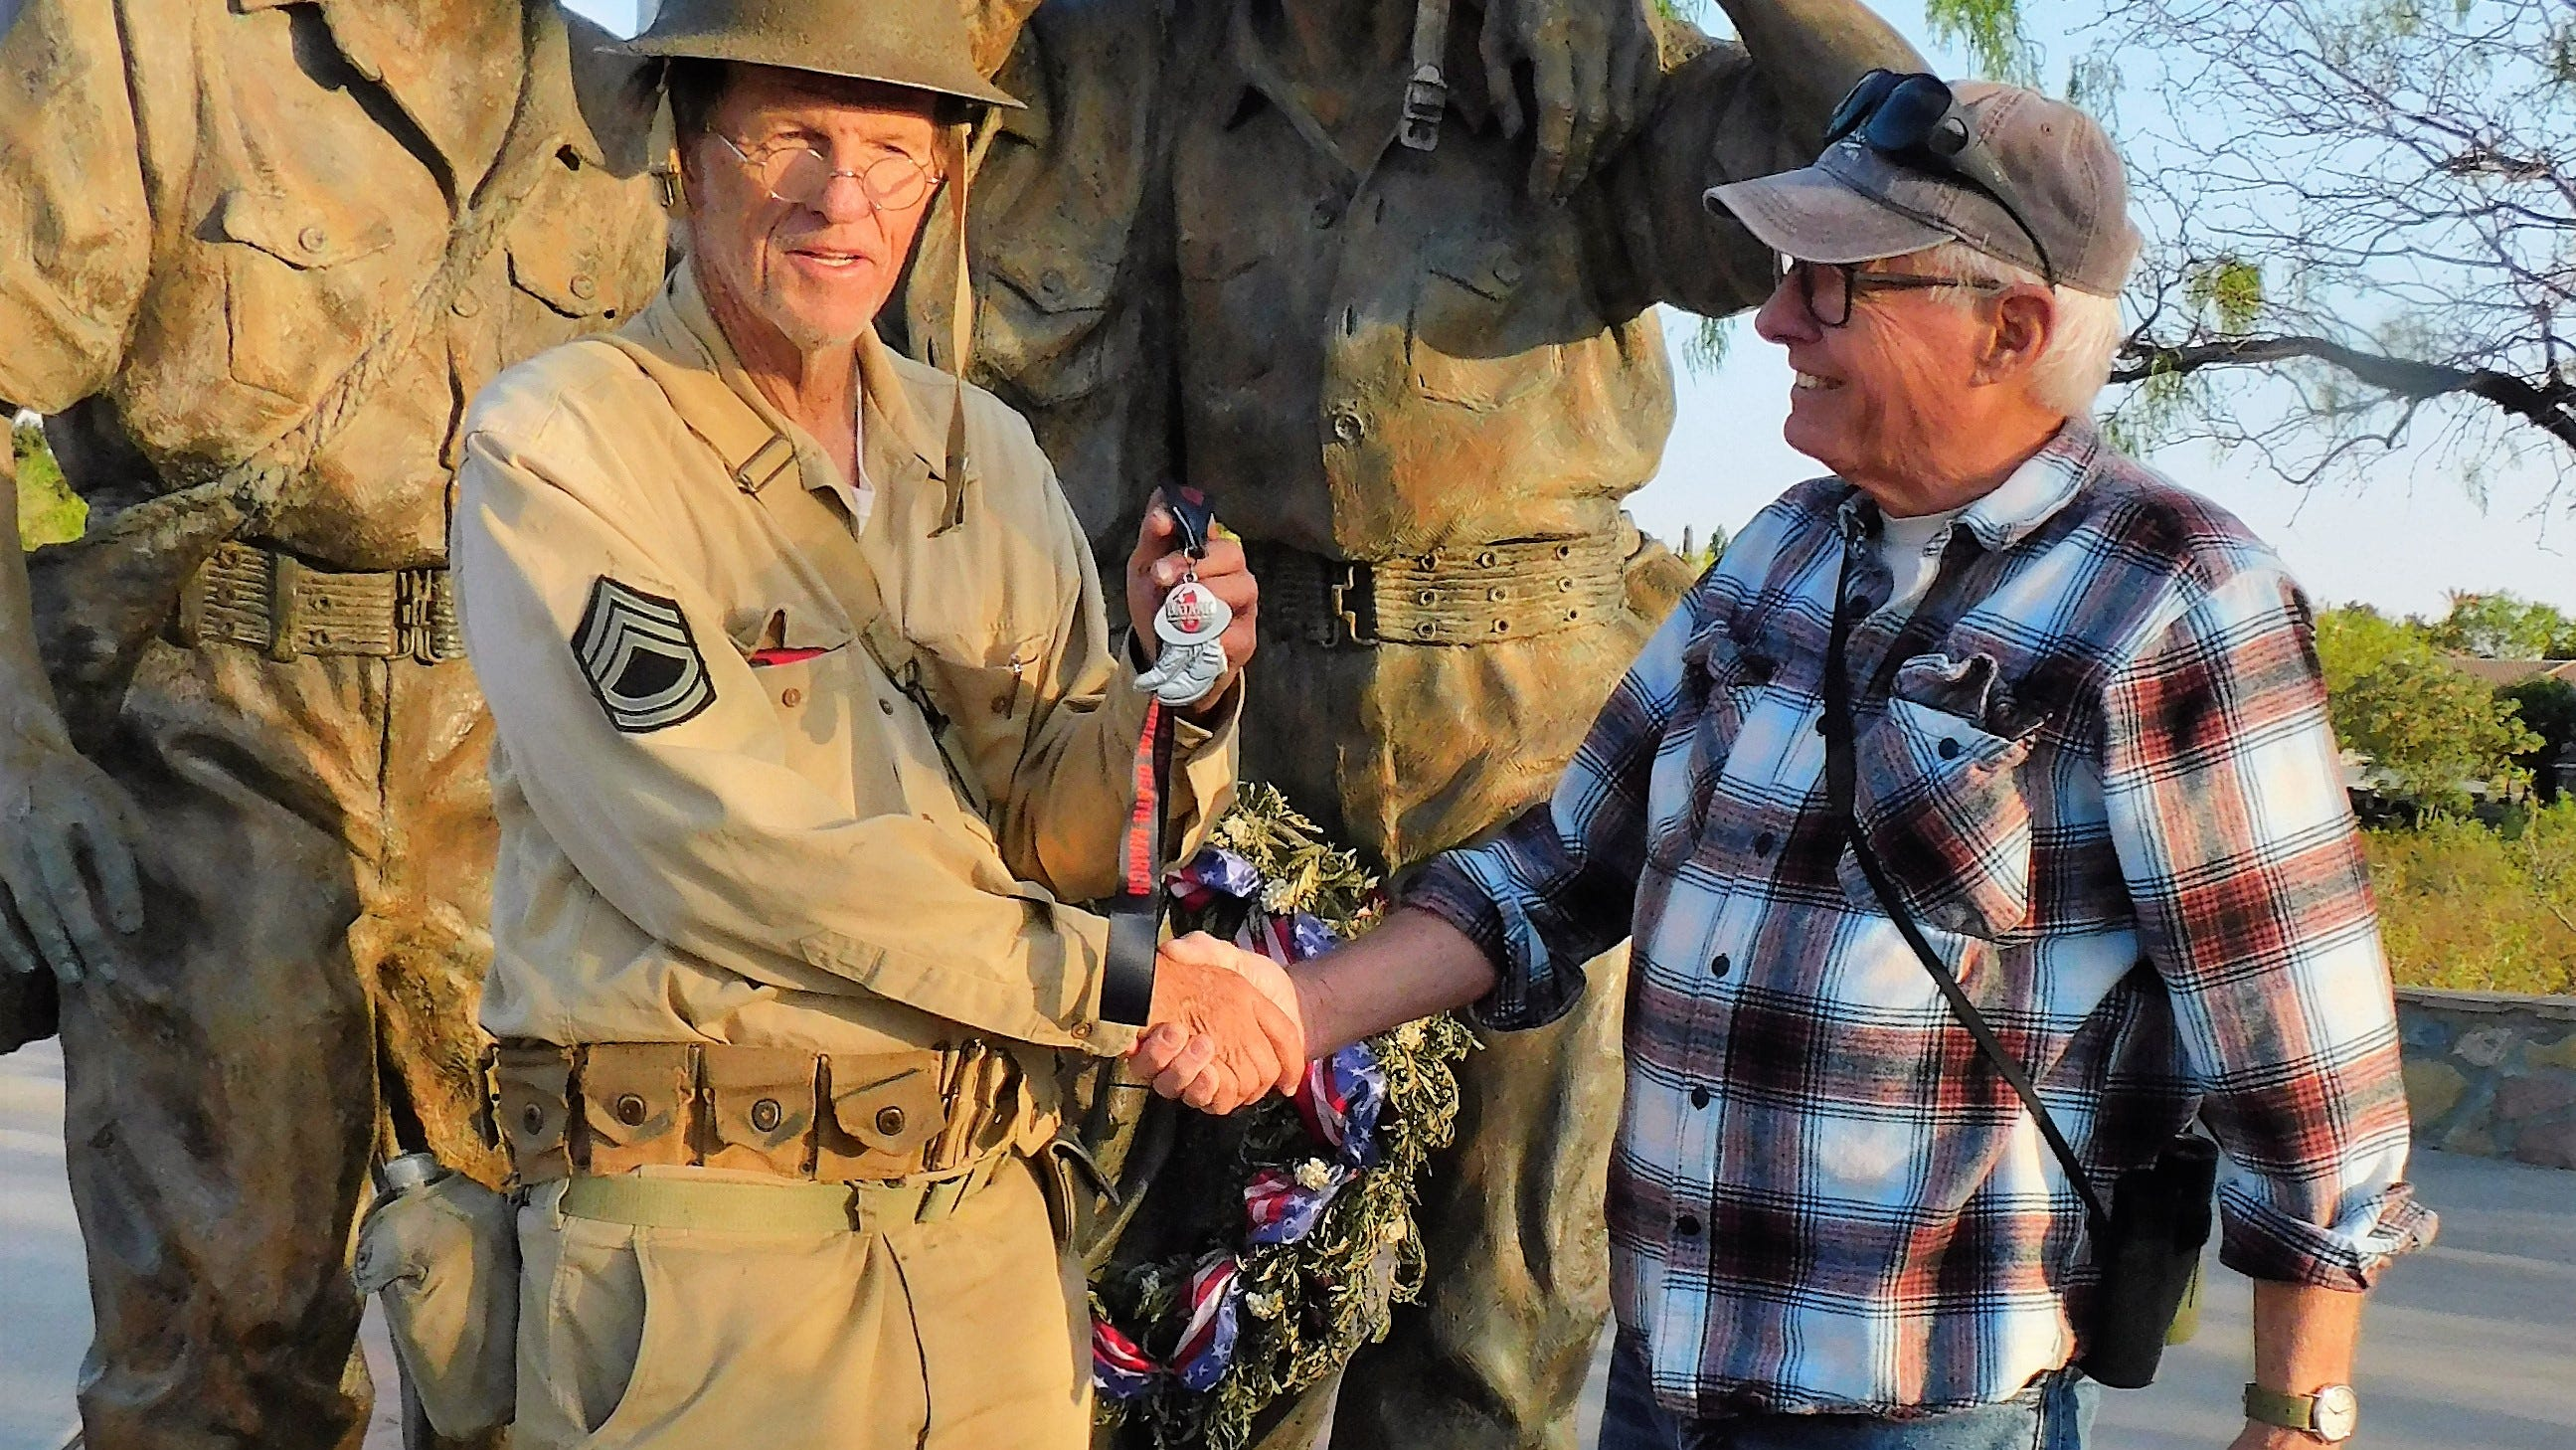 www.alamogordonews.com: Lincoln County firefighters participate in Bataan Memorial Death March